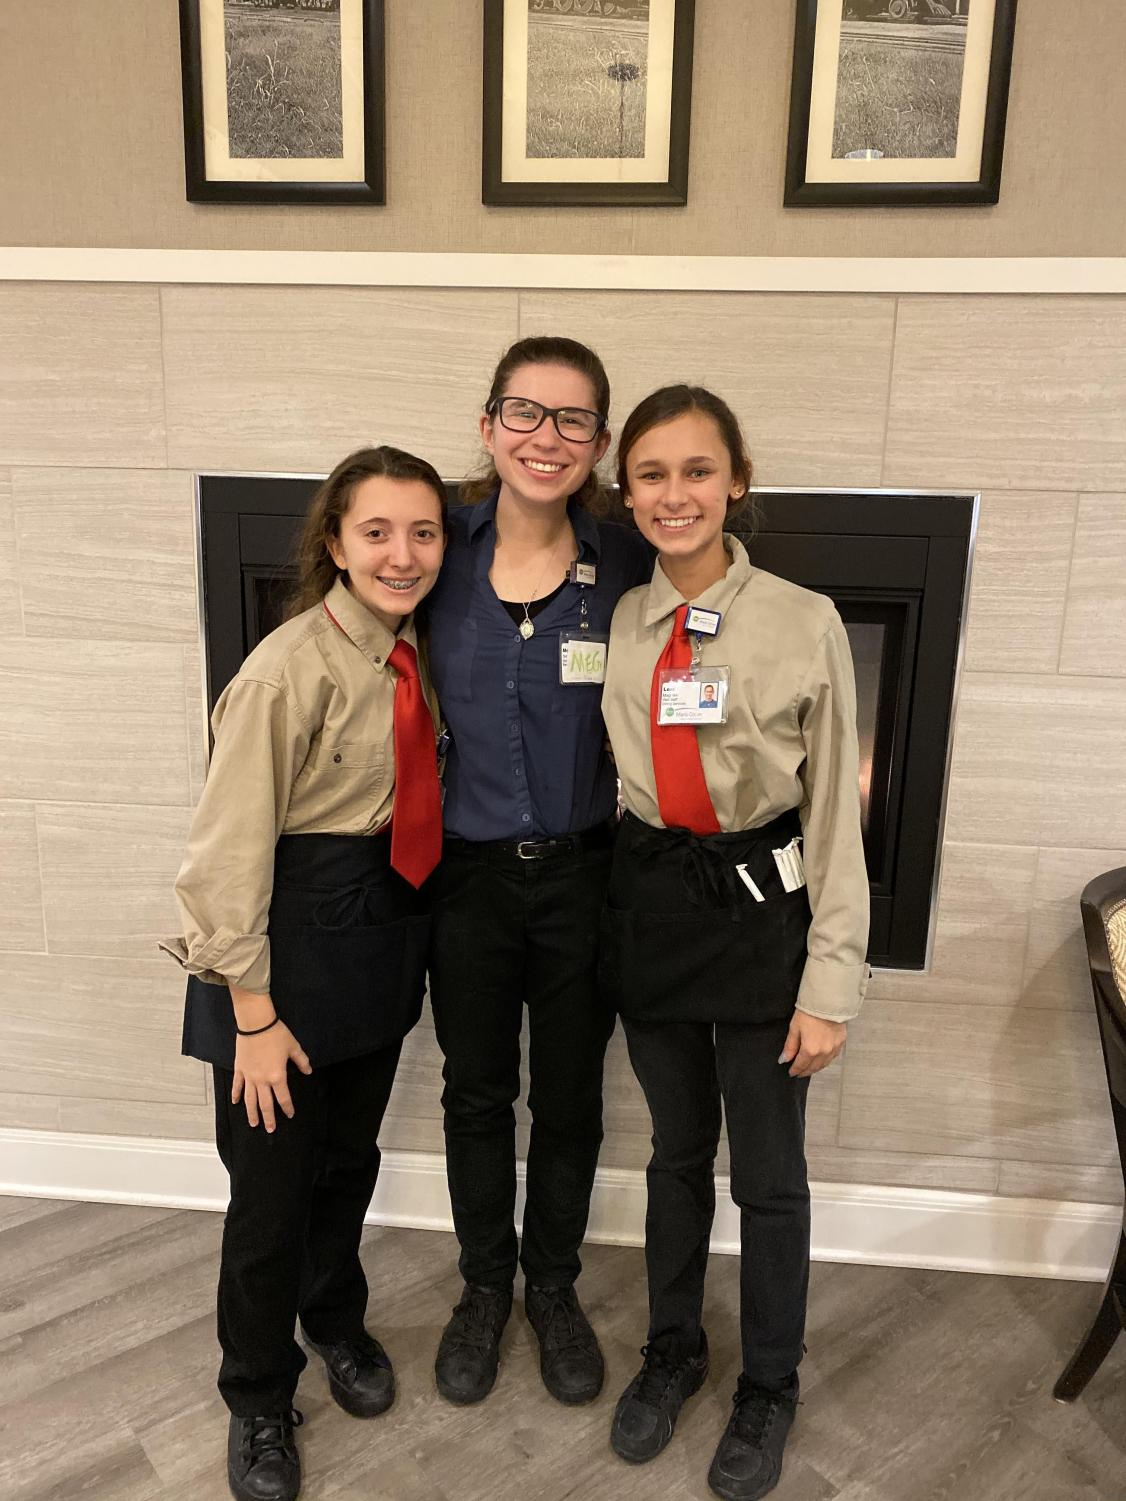 """Marissa Manzi (left) stands with two co-workers at her job. Since beginning her job, Manzi feels proud of her newfound income because, """"I earned it. I worked hard for it."""